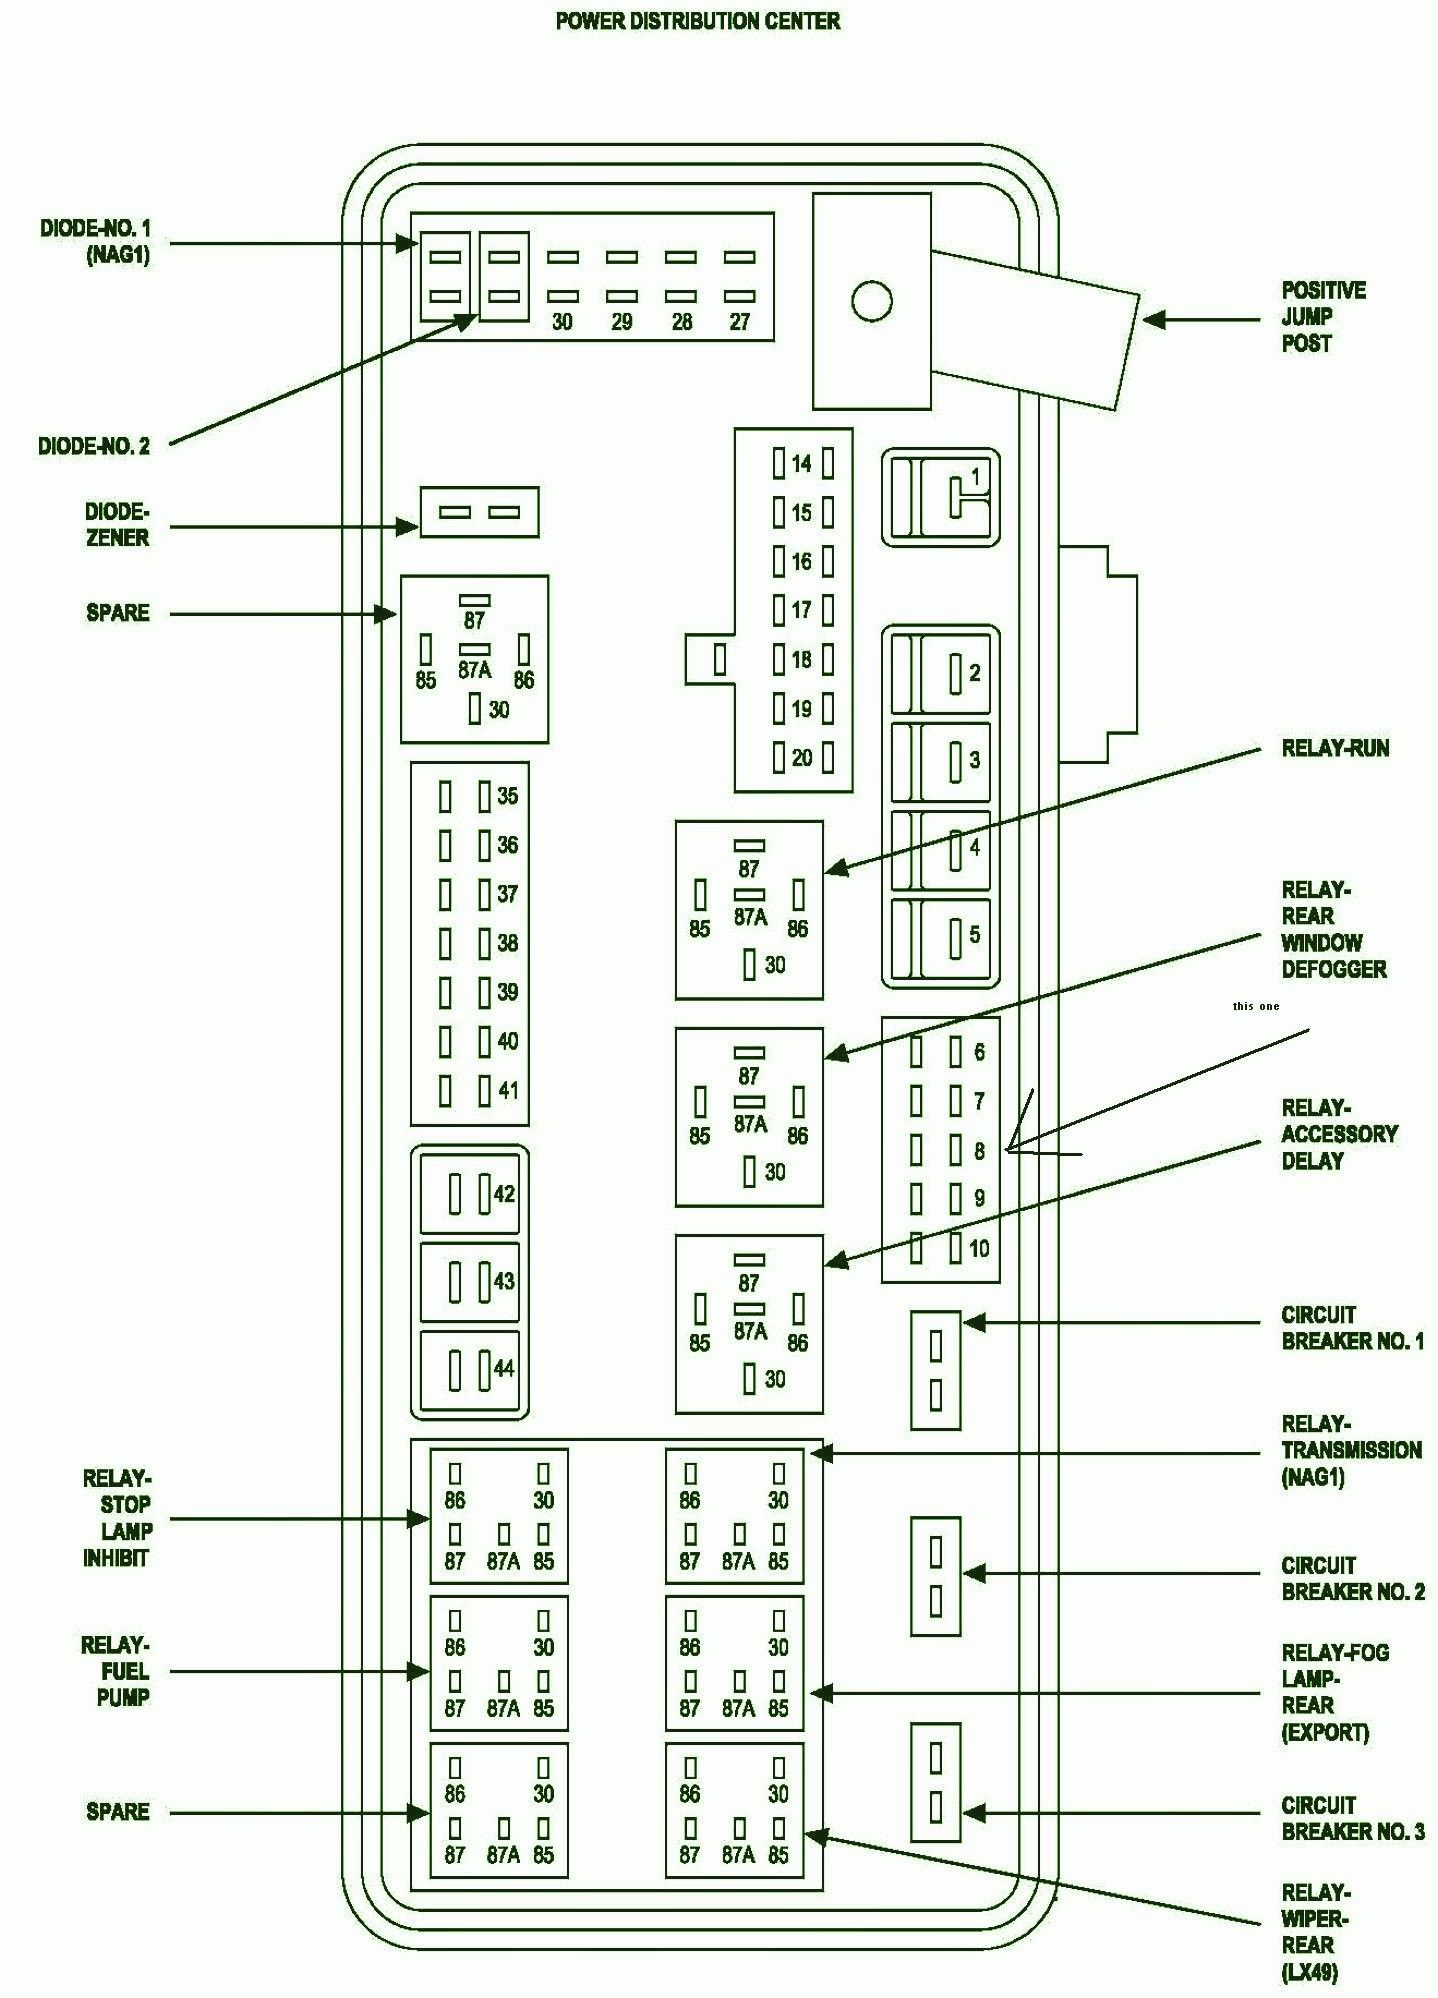 Unique Wiring Diagram 2005 Dodge Ram 1500 #diagram #diagramsample  #diagramtemplate #wiringdiagram #diagramchart #wor… | Dodge ram 1500, Fuse  box, 2012 dodge chargerPinterest